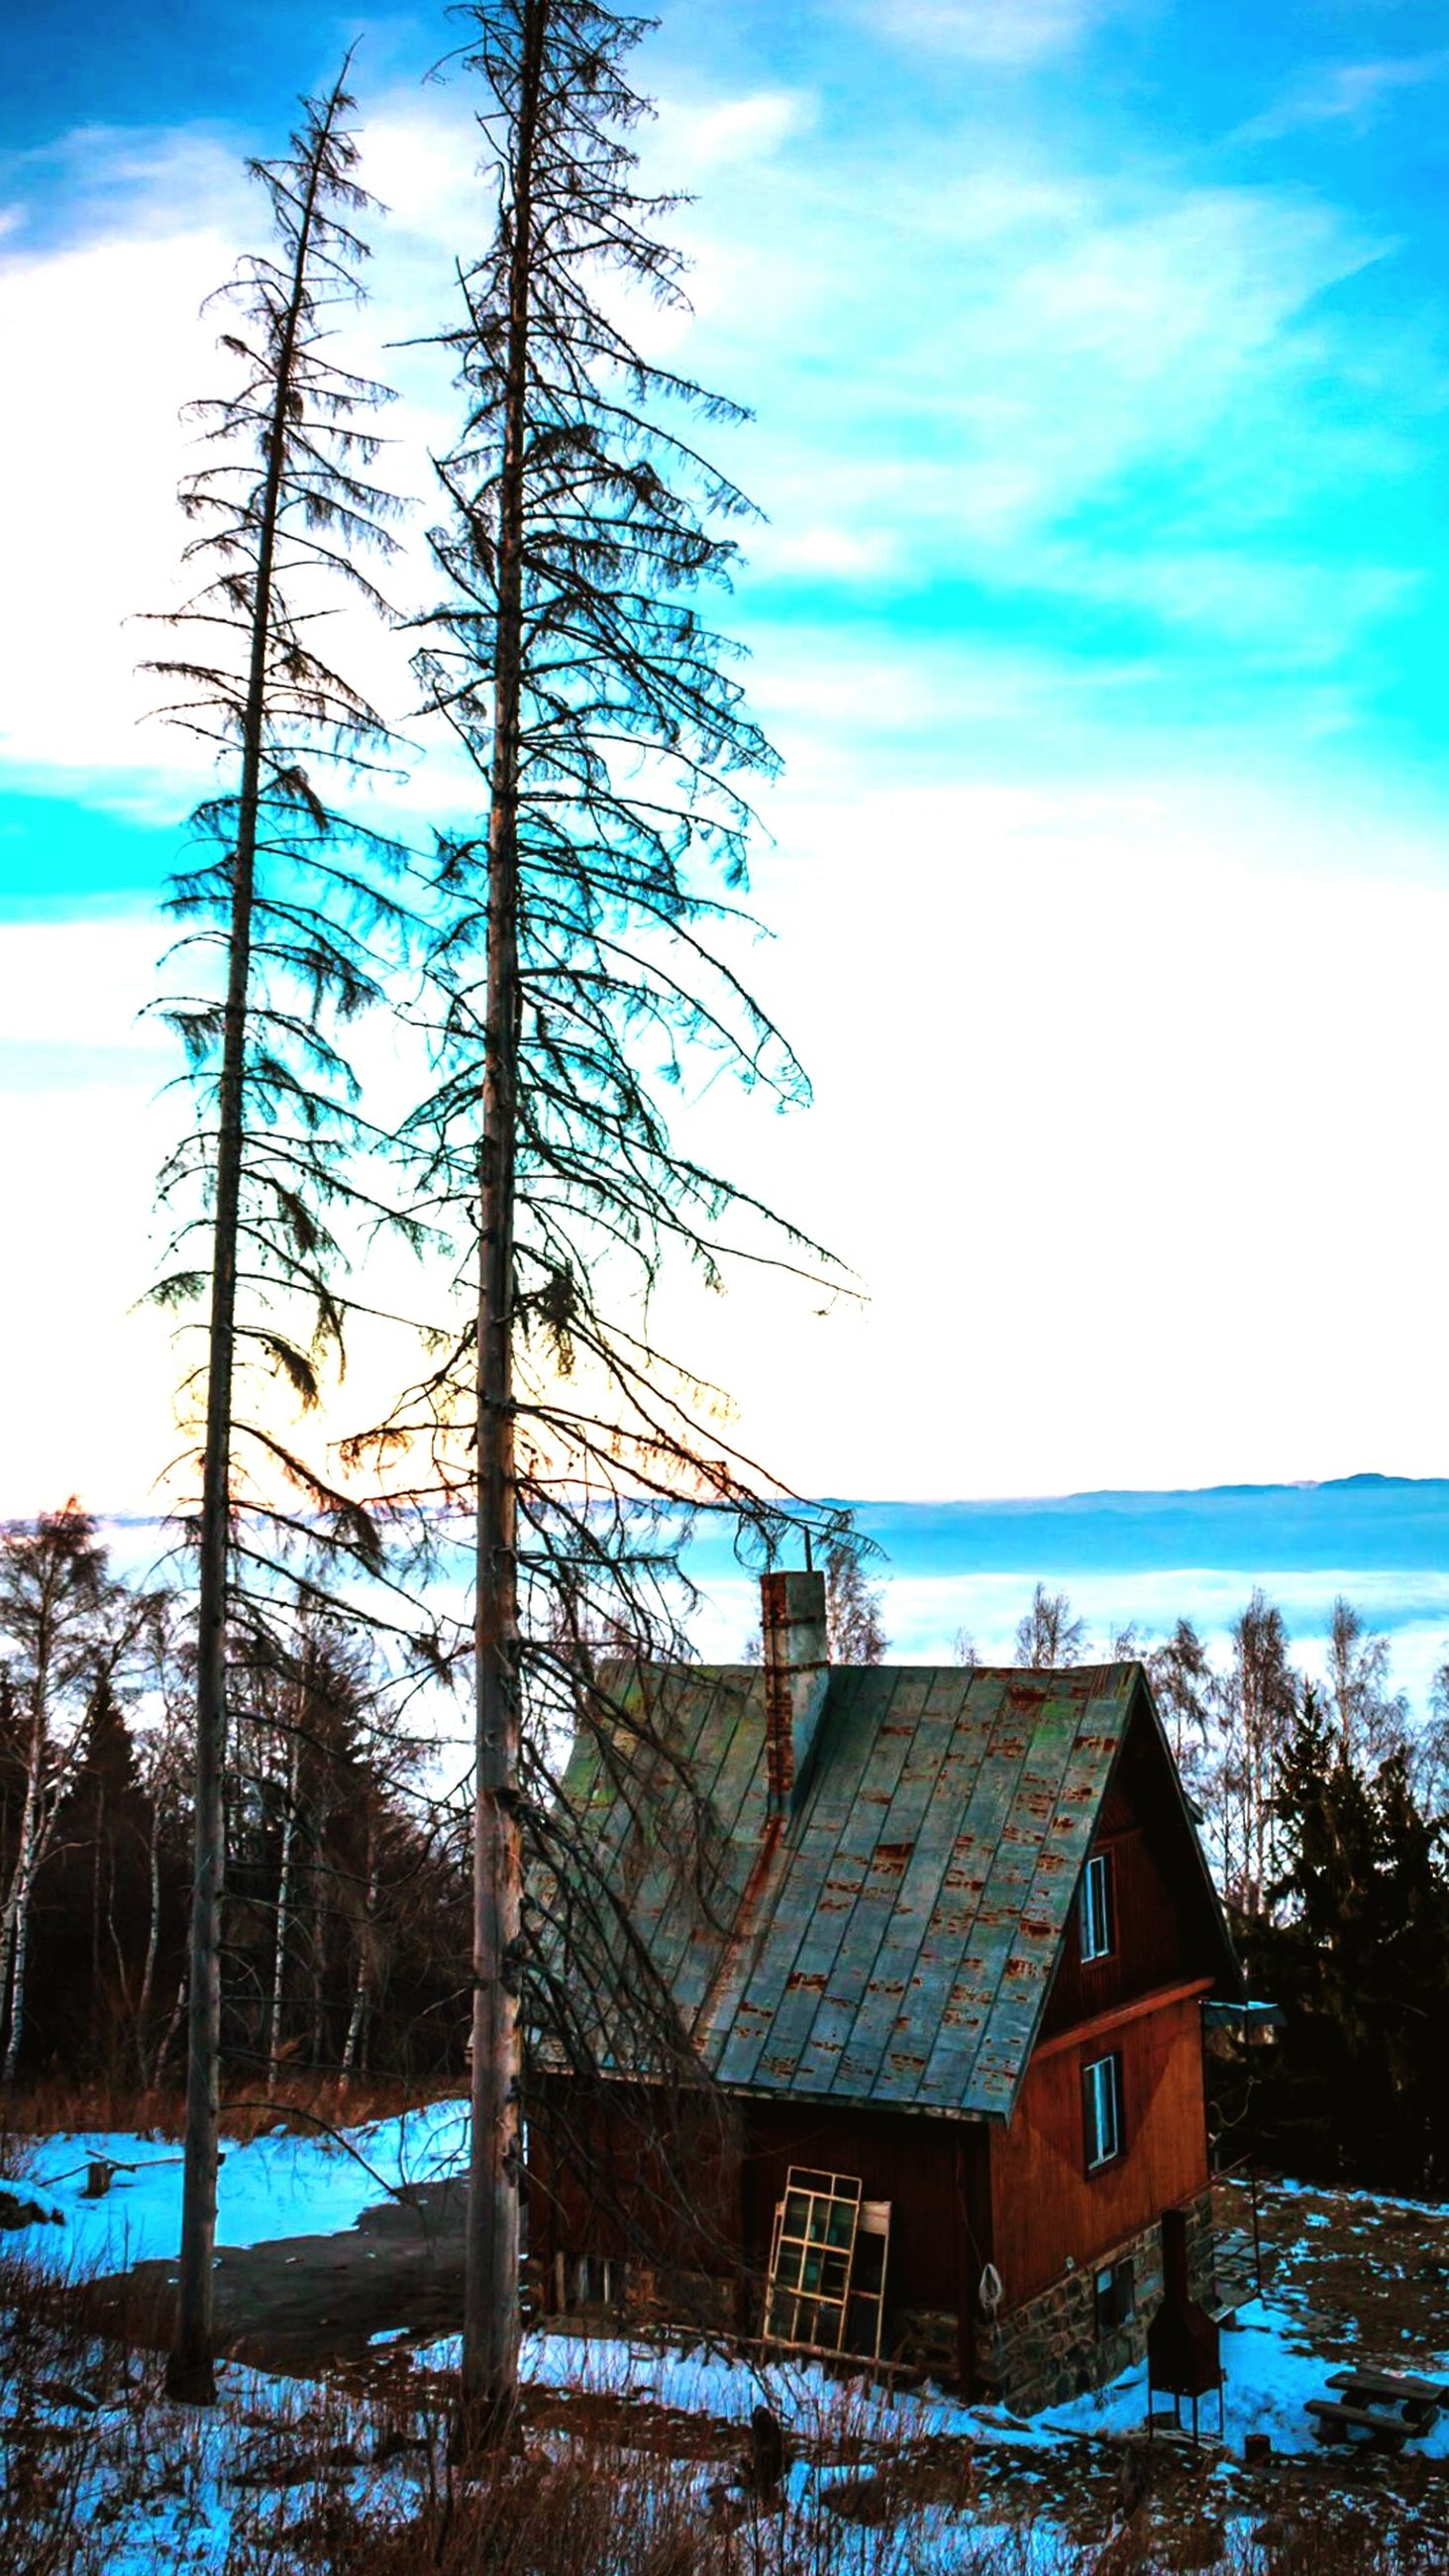 sea, blue, water, sky, tree, bare tree, horizon over water, building exterior, built structure, branch, nature, tranquility, architecture, tranquil scene, scenics, house, beauty in nature, cloud, cloud - sky, day